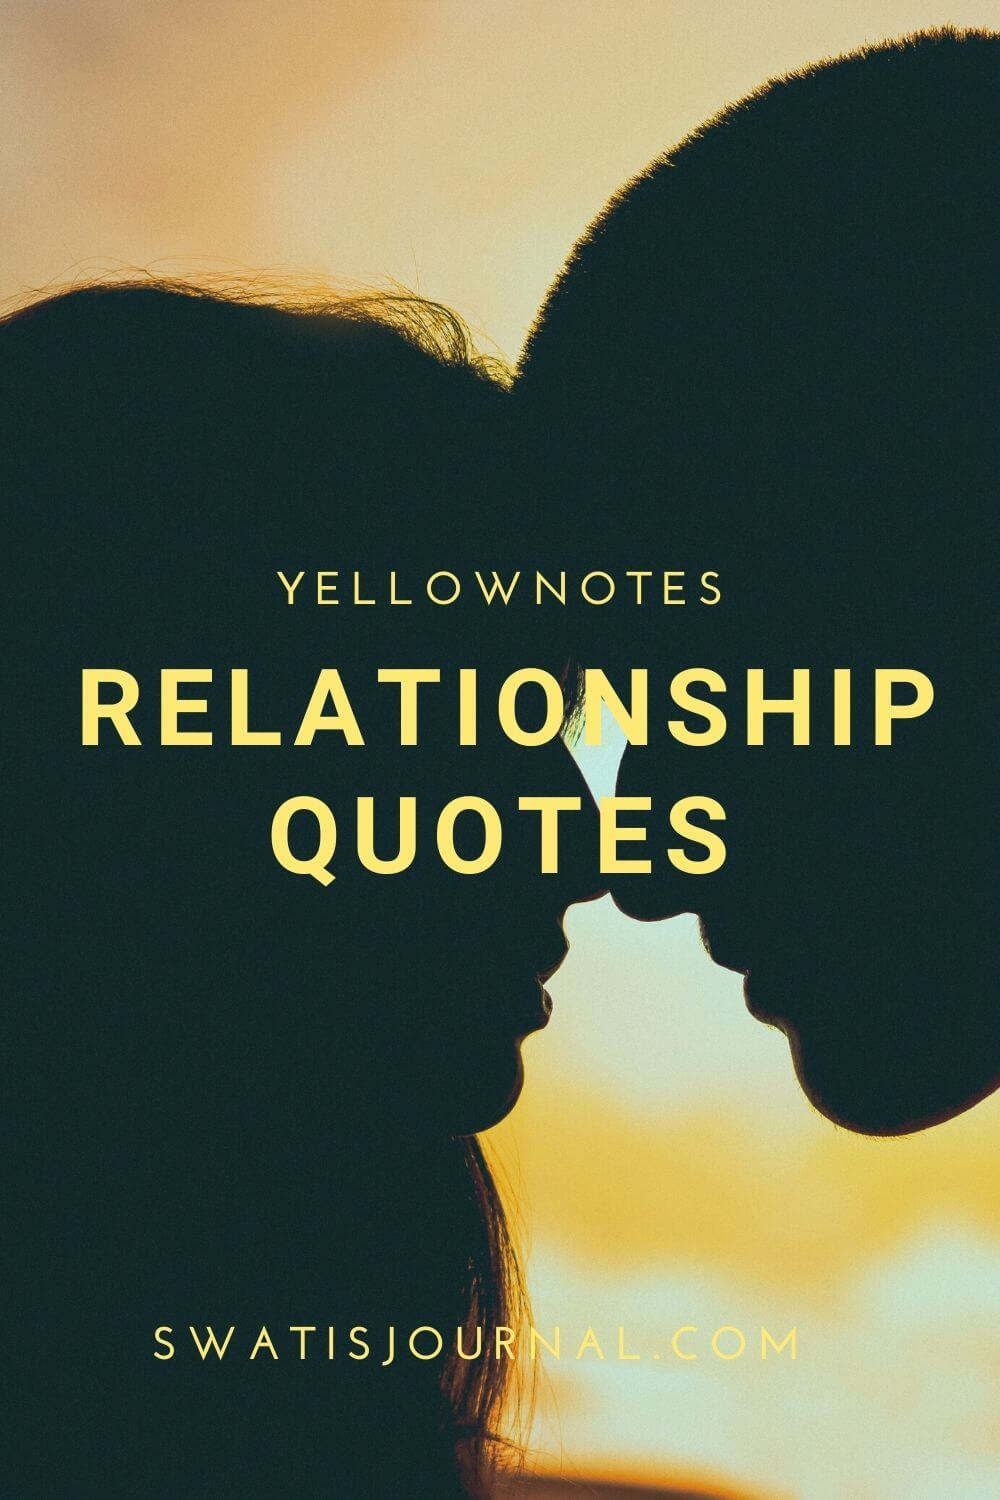 Yellownotes – Daily Quotes | Quote of the Week | July 2020 | Week 03 4.9 (7)